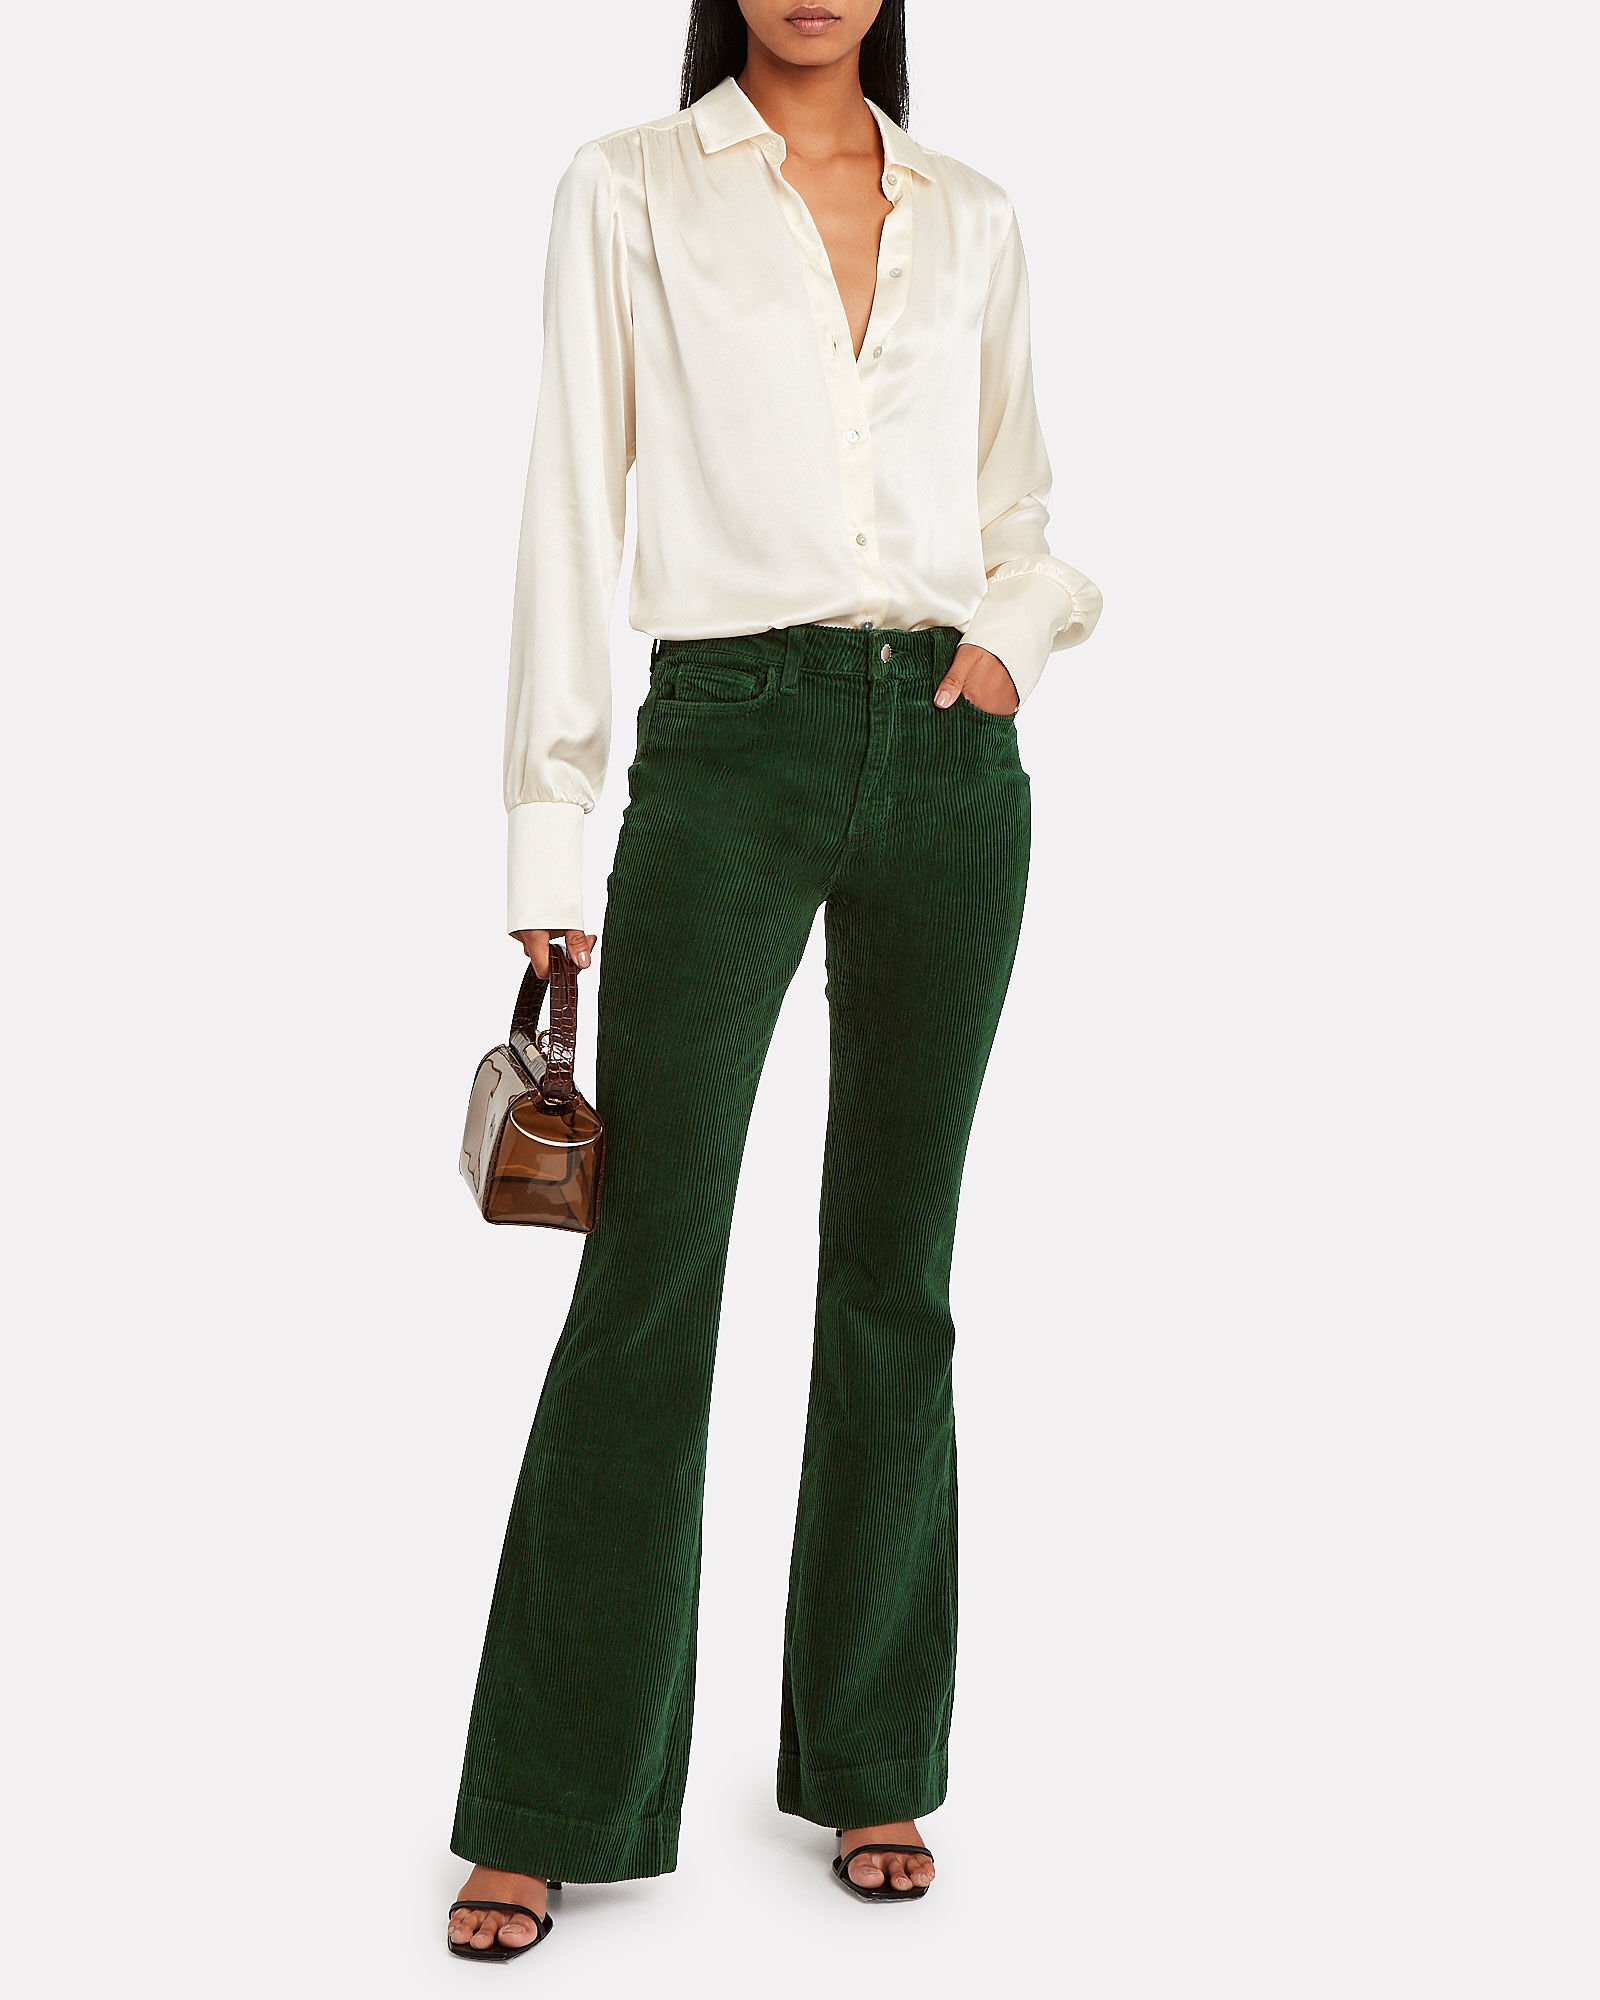 The Affair Flared Corduroy Jeans, GREEN, hi-res